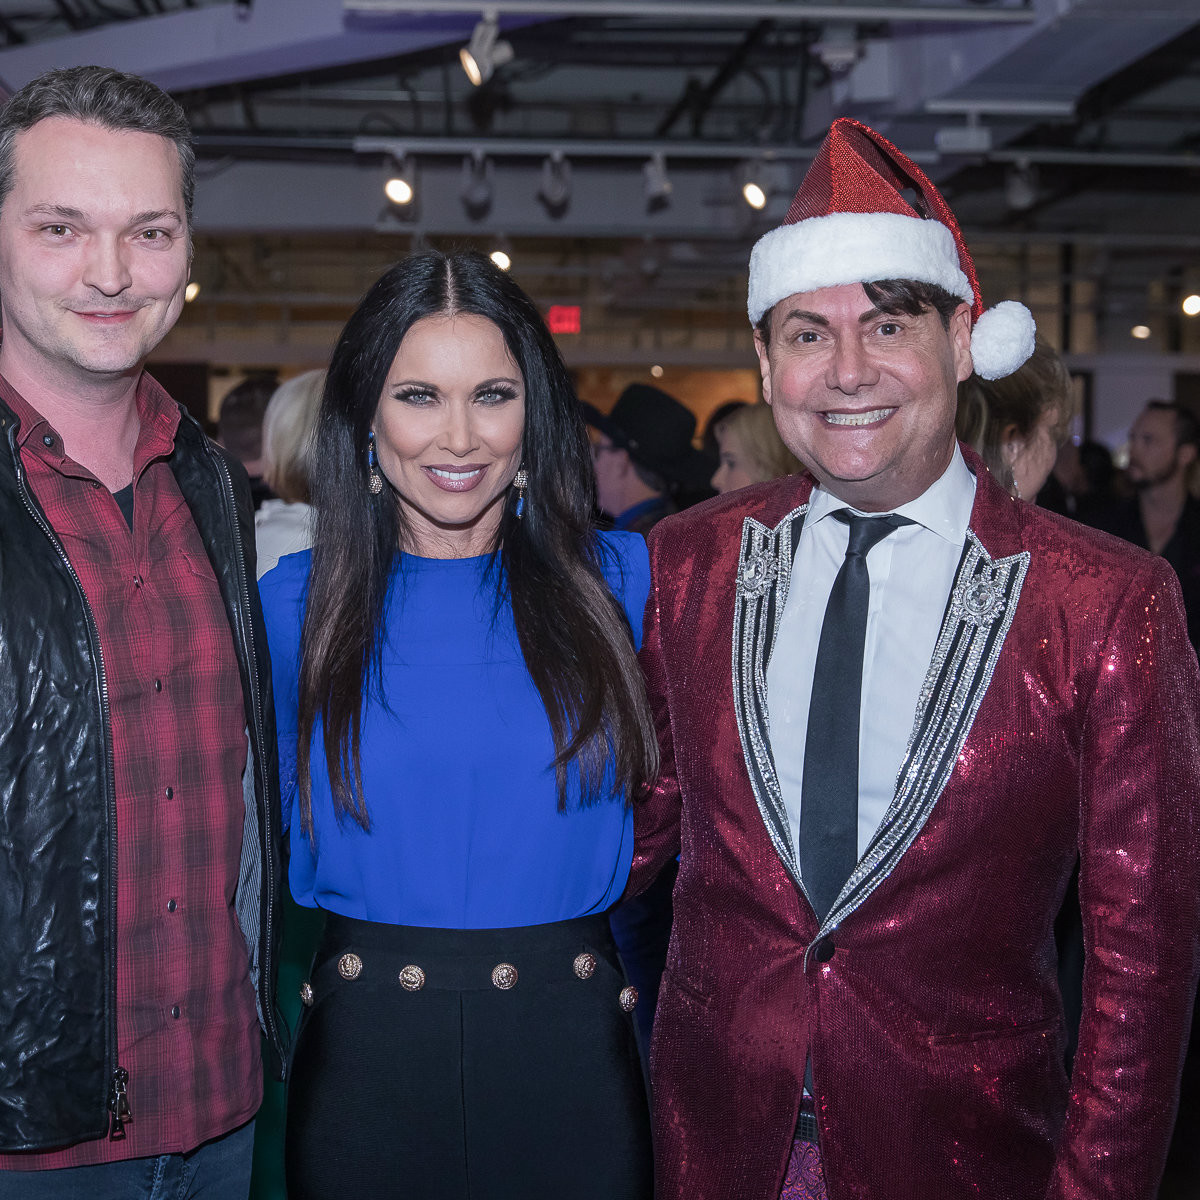 Chad Collom, LeeAnne Locken, Steve Kemble